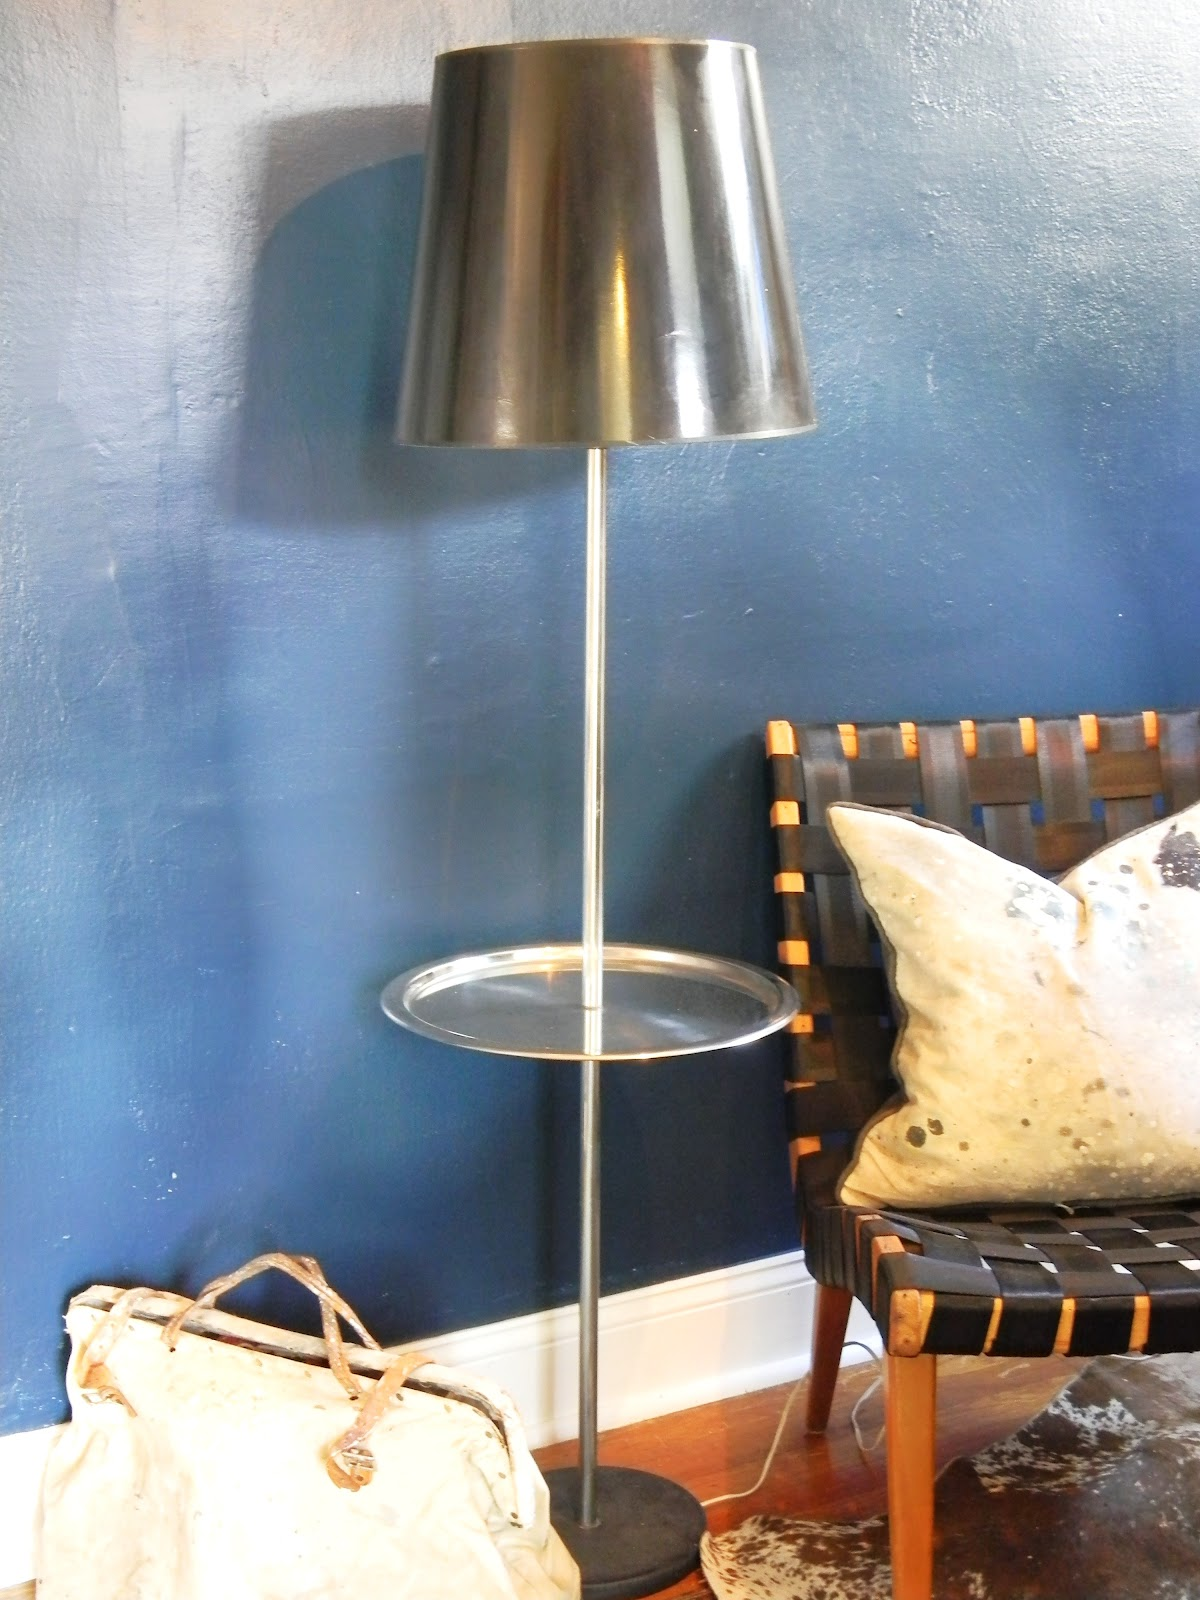 Lamp table combo vintage best inspiration for table lamp lamp combo lamp table stand combo modern lamp table combo lamp table mozeypictures Choice Image